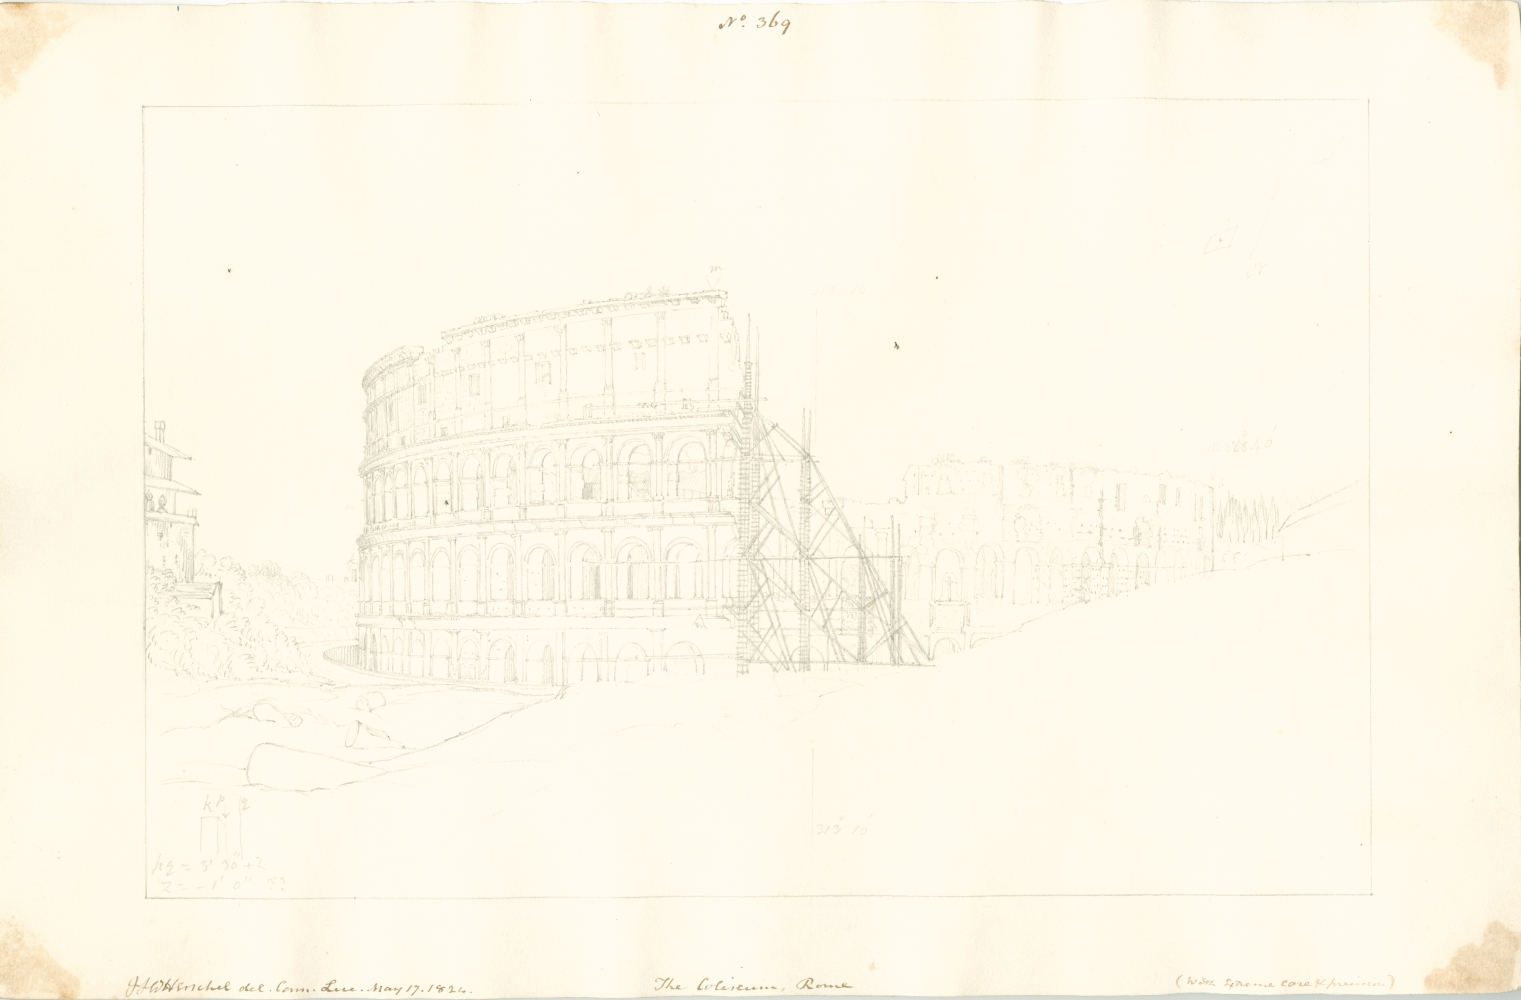 """Sir John Frederick William HERSCHEL (English, 1792-1872) """"No 369 The Coliseum, Rome (with extreme care & precision)."""", 17 May 1824 Camera lucida drawing, pencil on paper 20.1 x 30.9 cm on 25.2 x 38.6 cm paper Numbered, signed, dated and titled """"No 369 / JFW Herschel del. Cam. Luc. May 17, 1824. / The Coliseum, Rome / (with extreme care & precision)."""" in ink in border. Inscribed """"Coliseum"""" in pencil on verso Inventory #301377.11"""